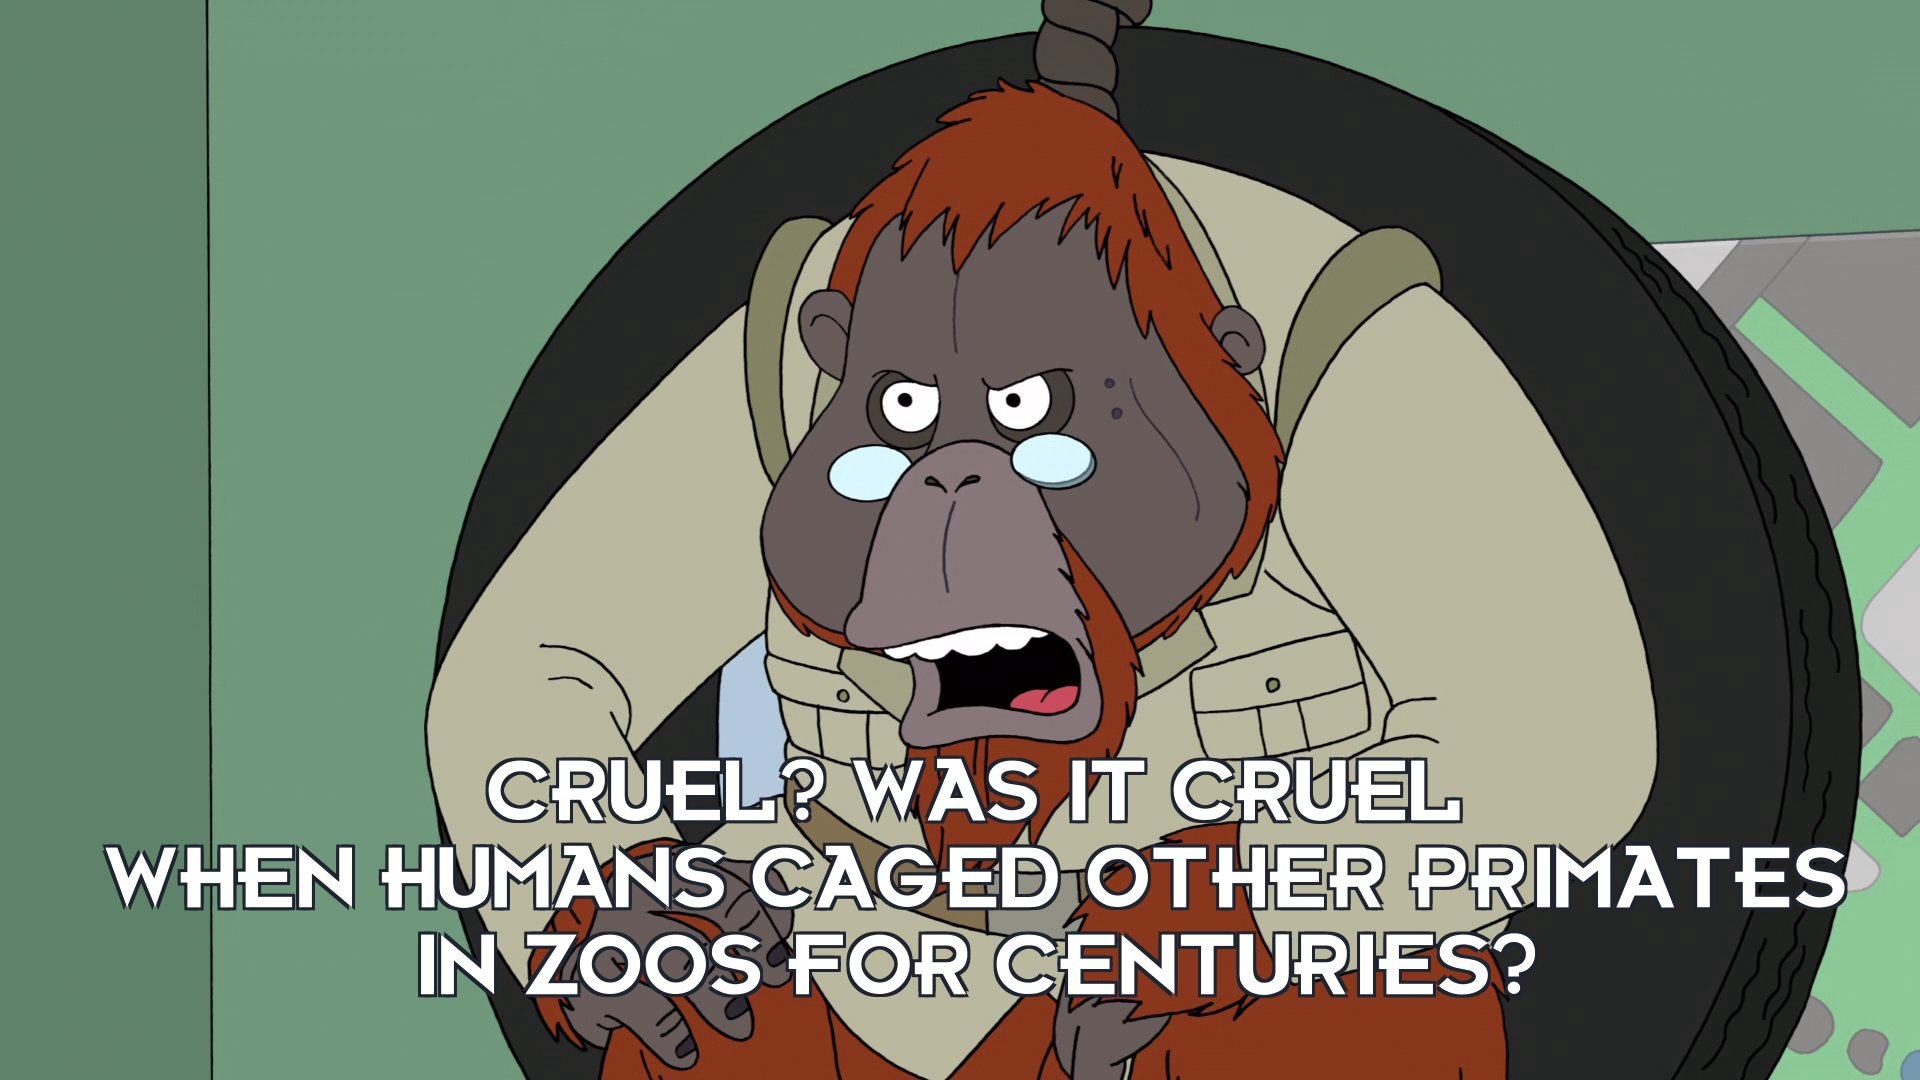 Dr Banjo: Cruel? Was it cruel when humans caged other primates in zoos for centuries?